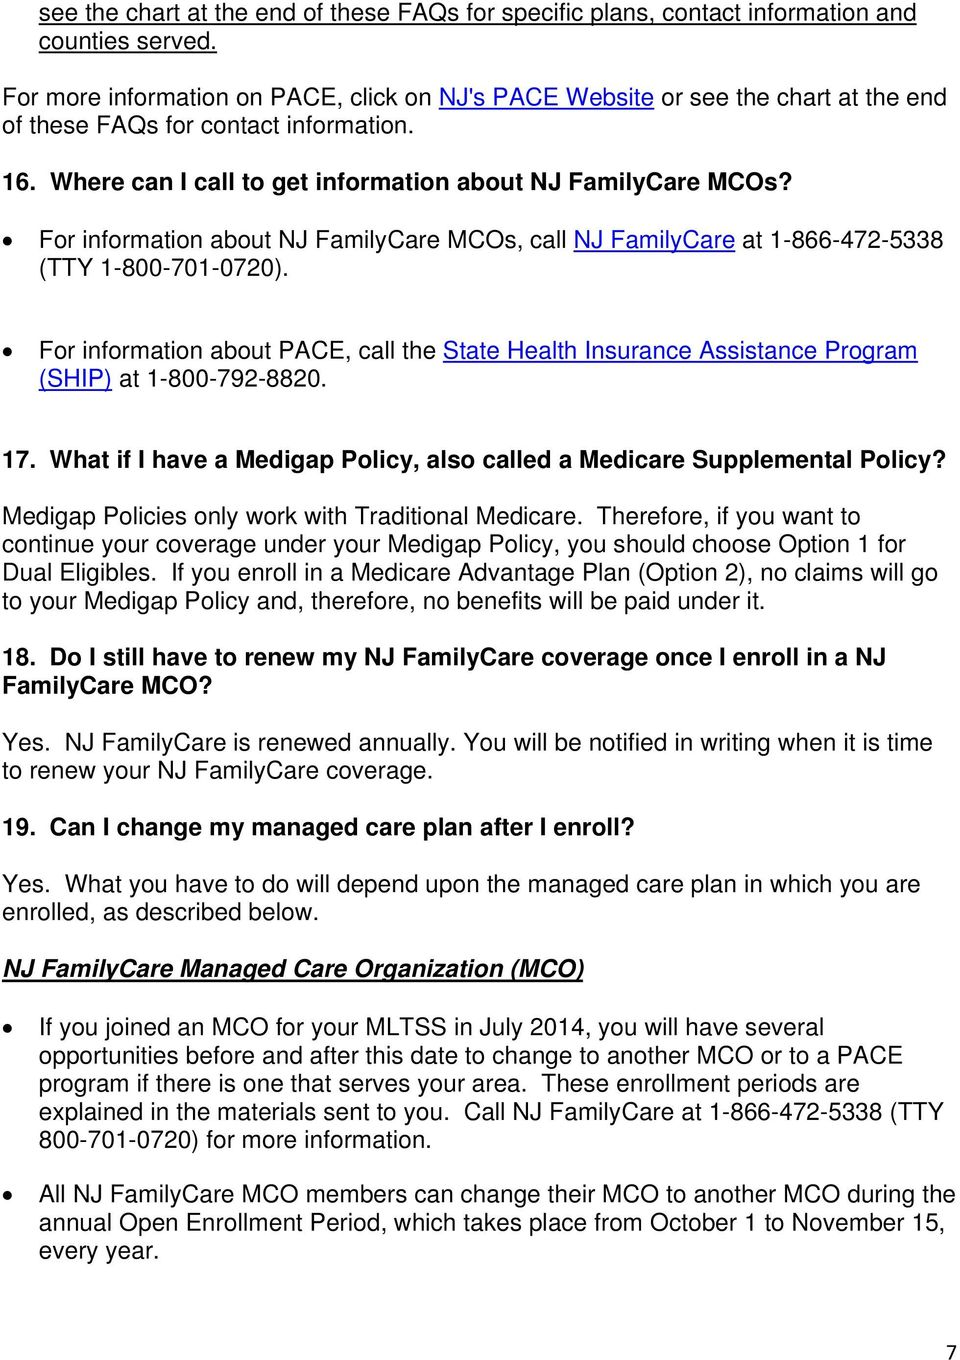 For information about NJ FamilyCare MCOs, call NJ FamilyCare at 1-866-472-5338 (TTY 1-800-701-0720).